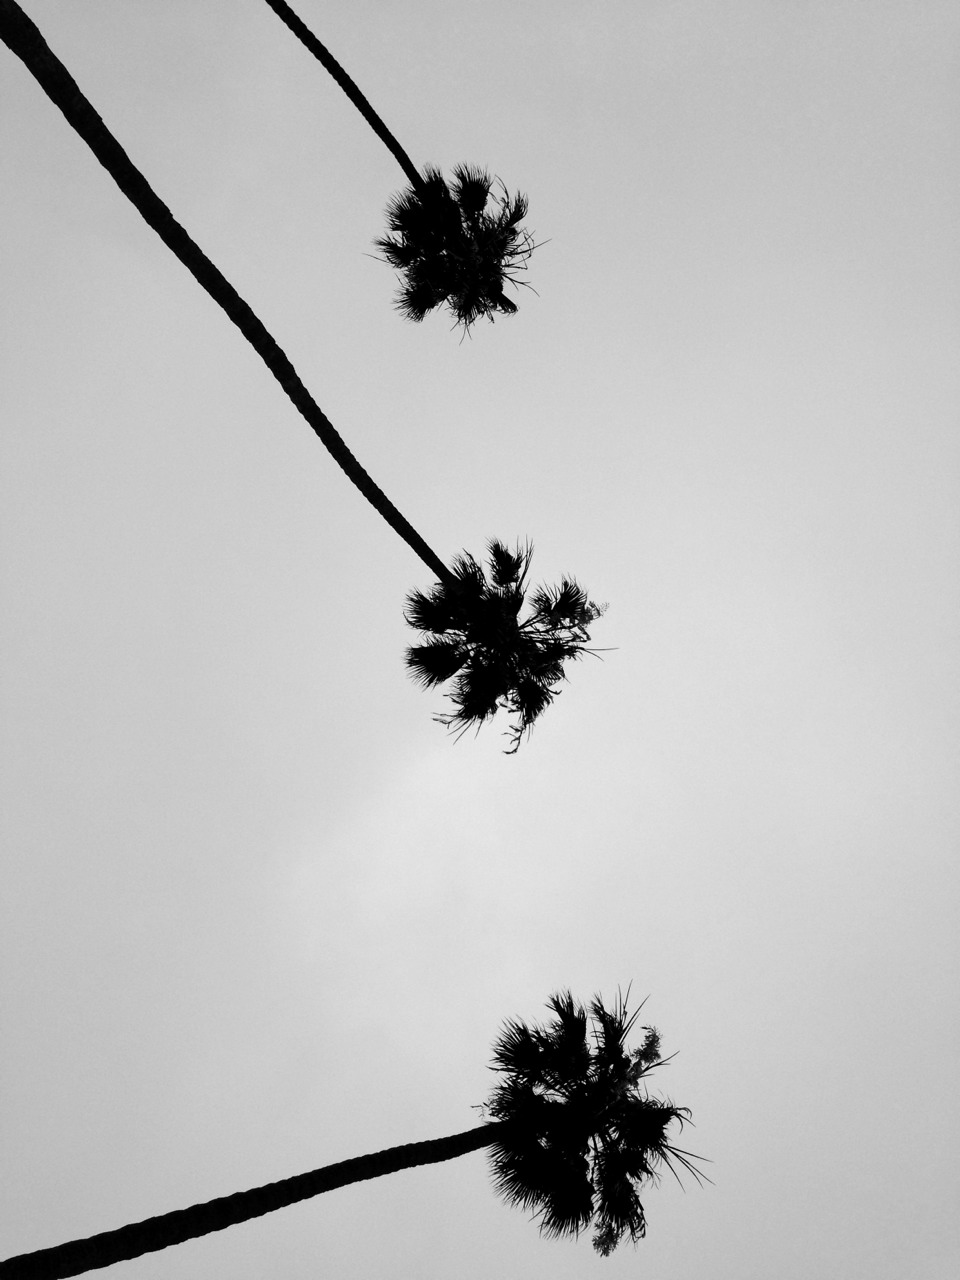 The first of one attempt to photograph some palm trees while in California…